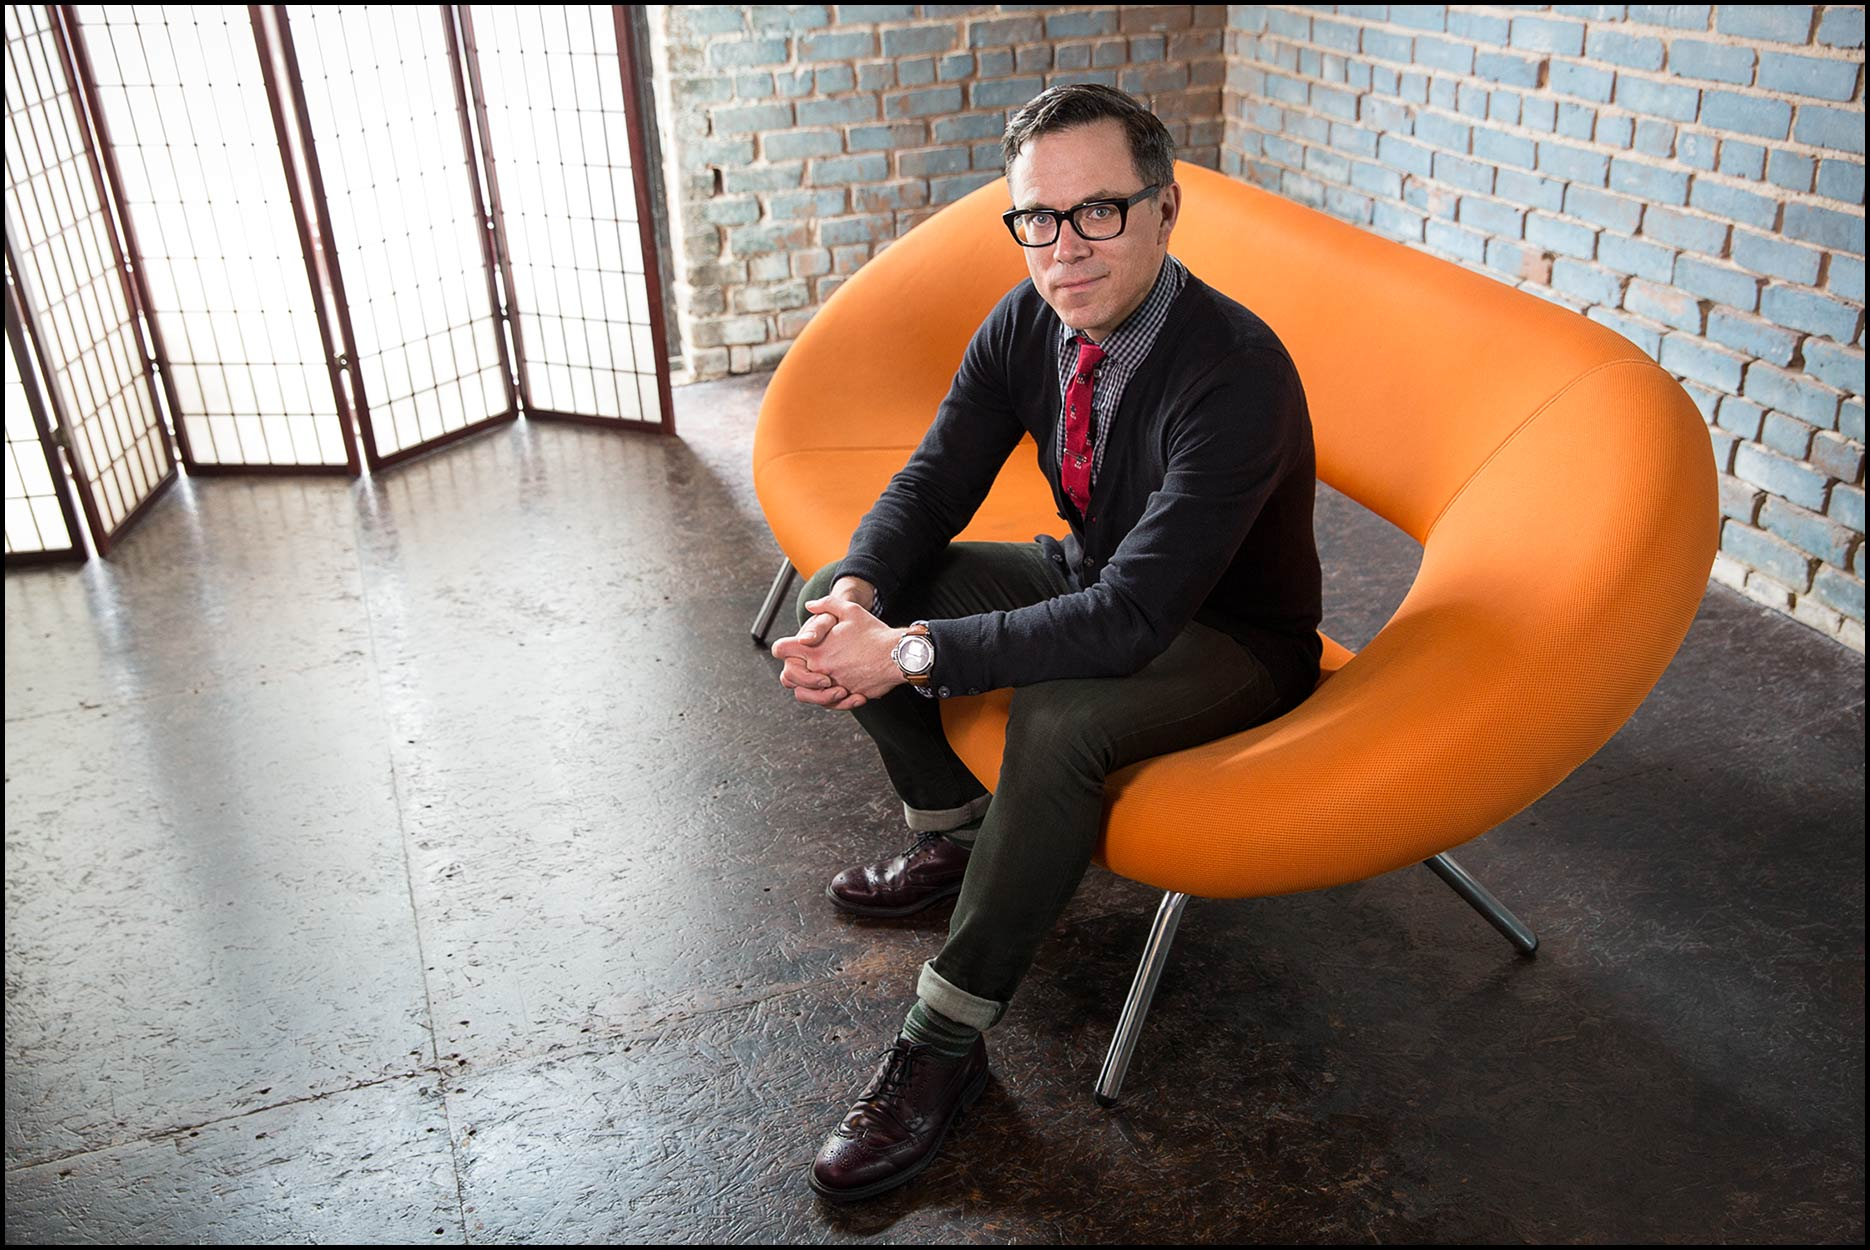 Canadian author Tim Caufield sits on an orange loveseat in front of a rustic brick wall.